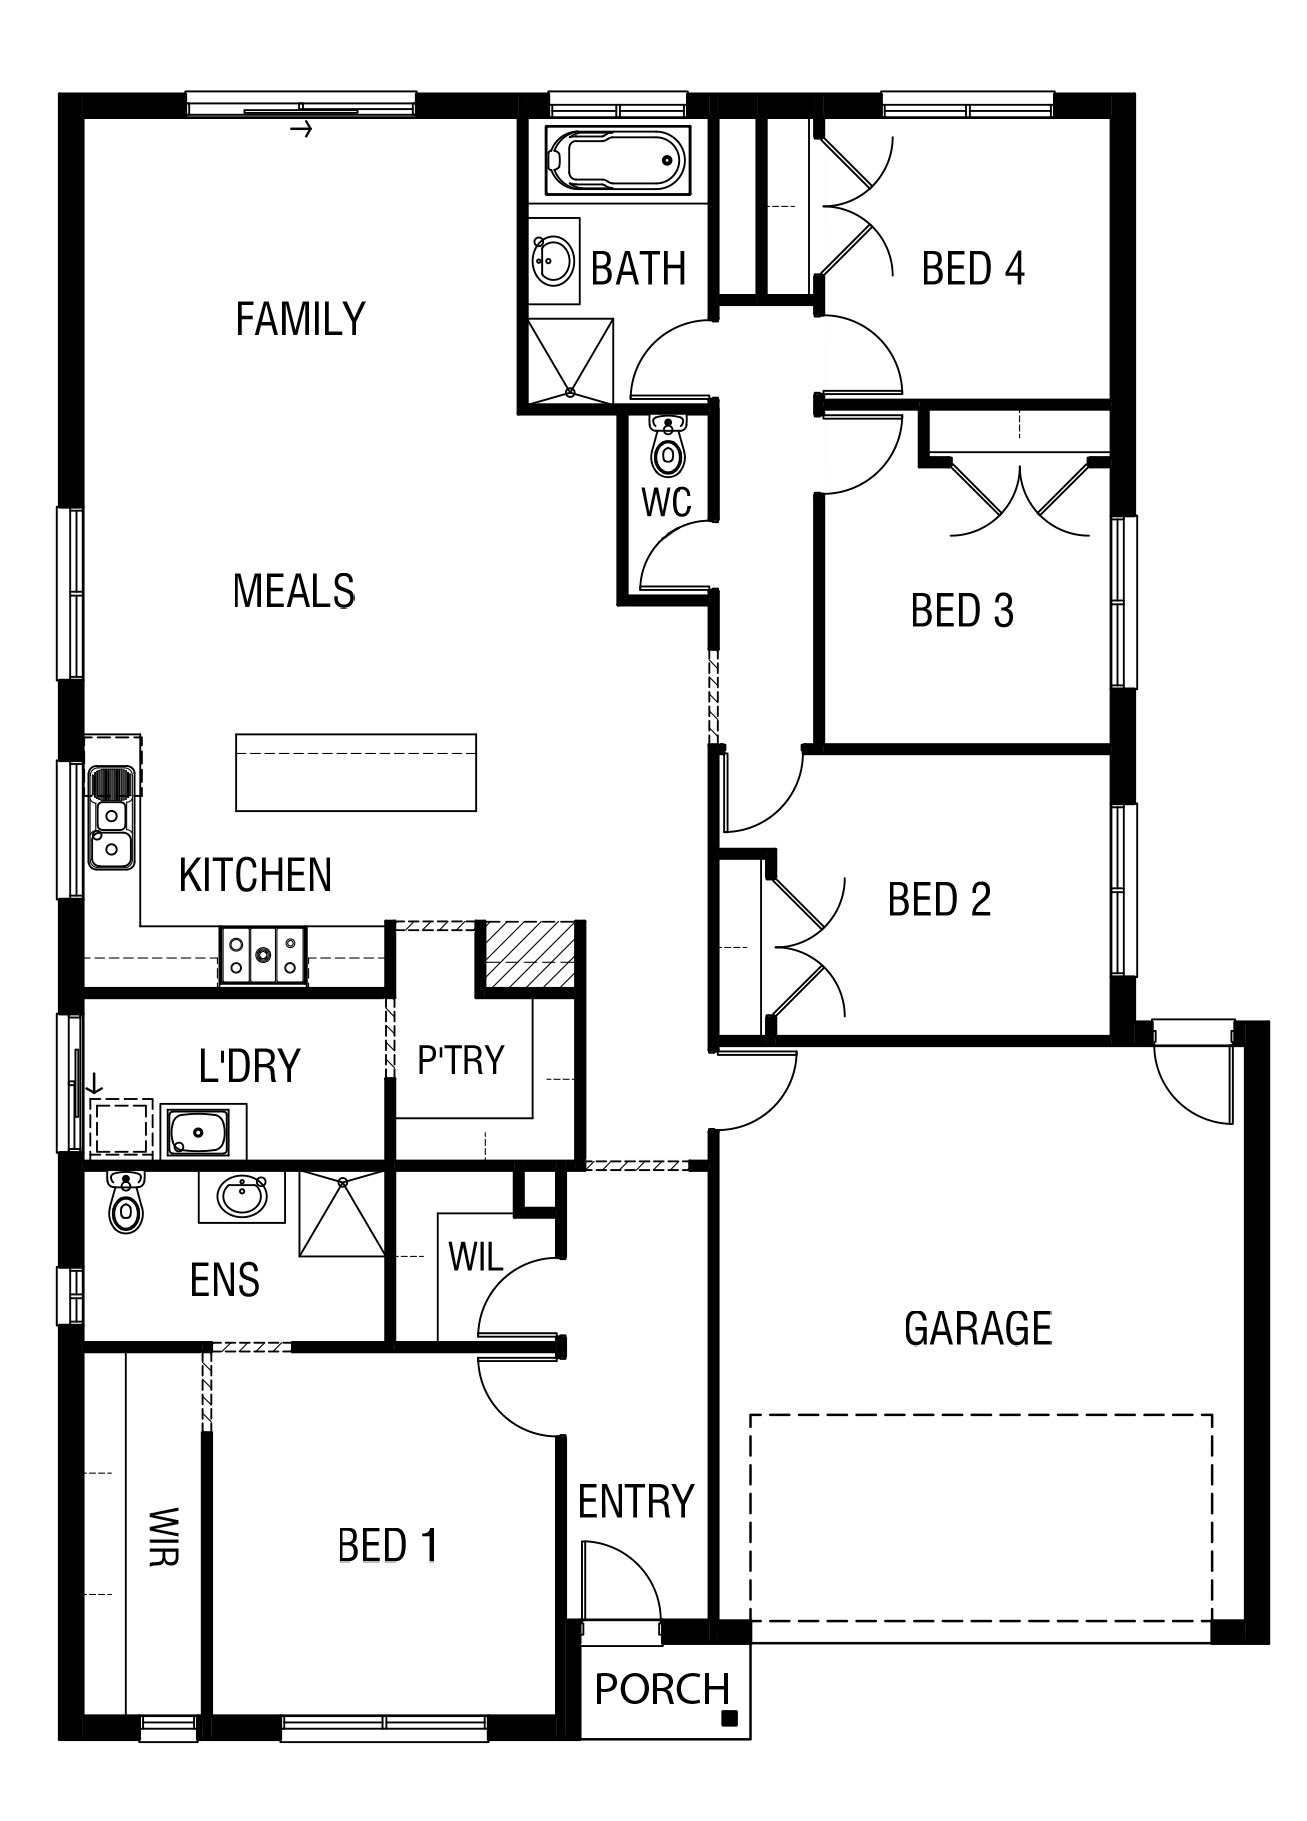 2 Bedroom townhouse Designs Luxury Home Designs Melbourne